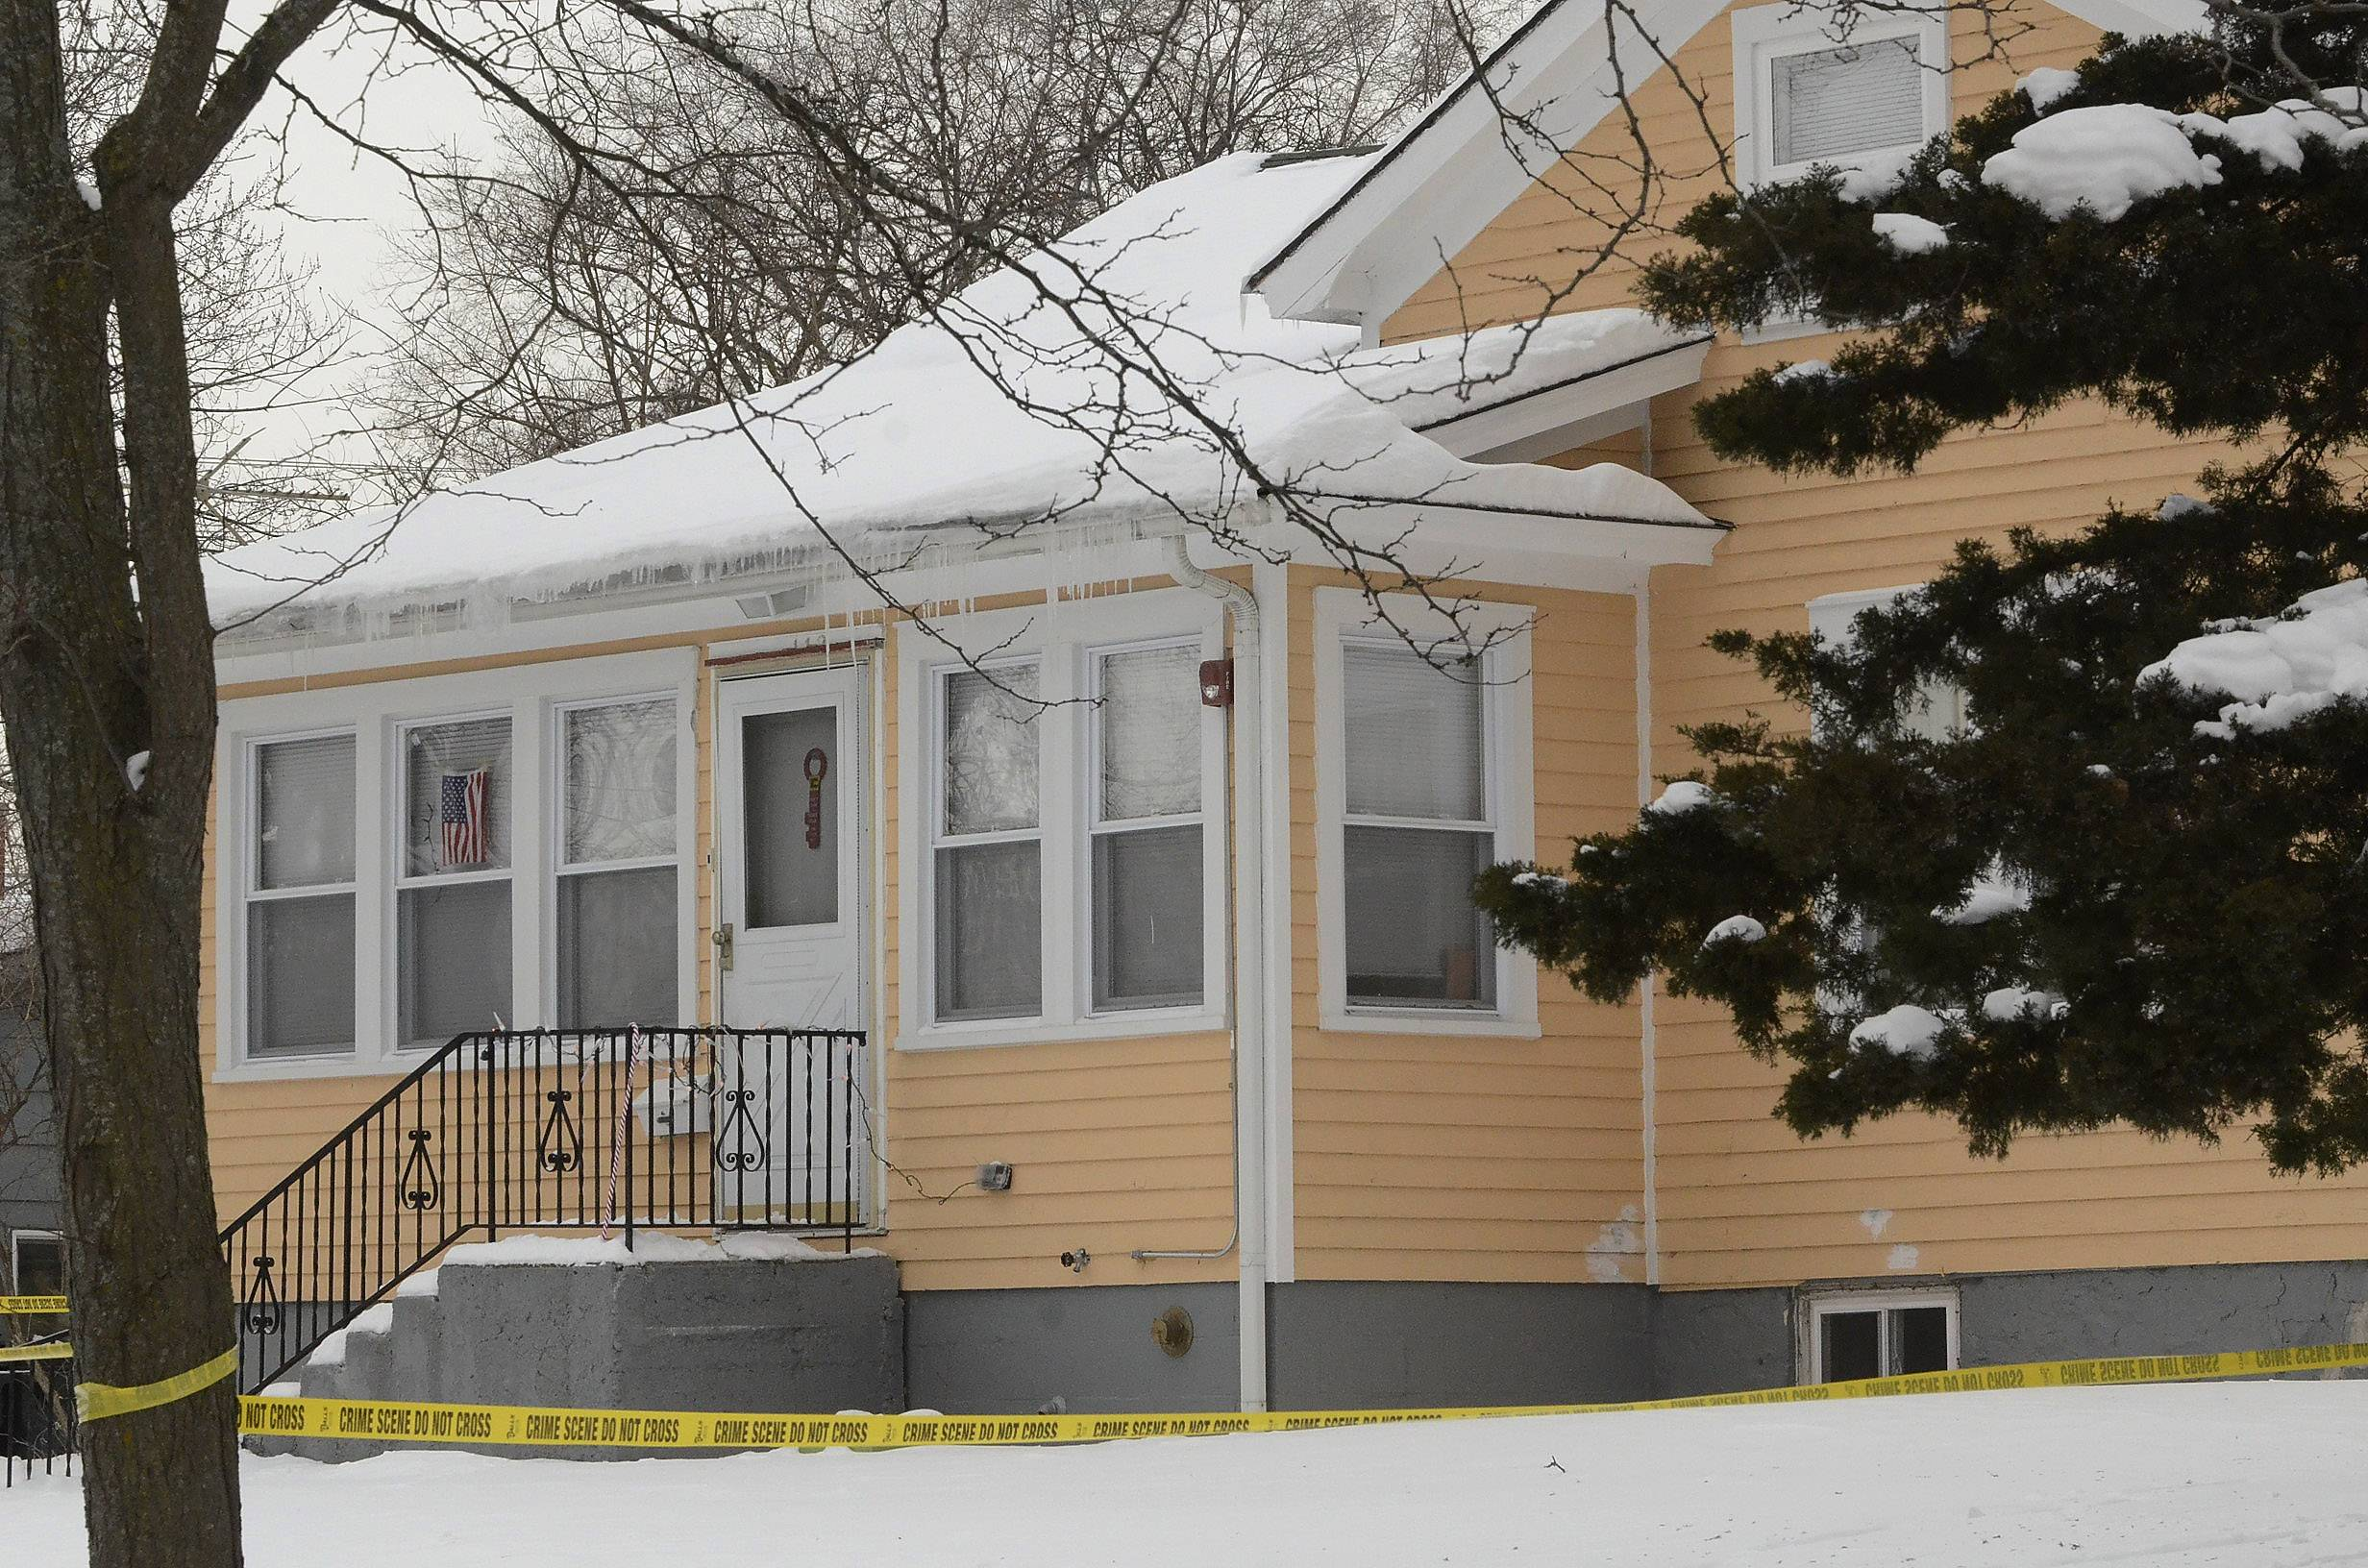 Barrington police and paramedics responded to the death of Mya G. Edwards Jan. 8 in a rented apartment inside this house on the 100 block of South Hager Avenue.